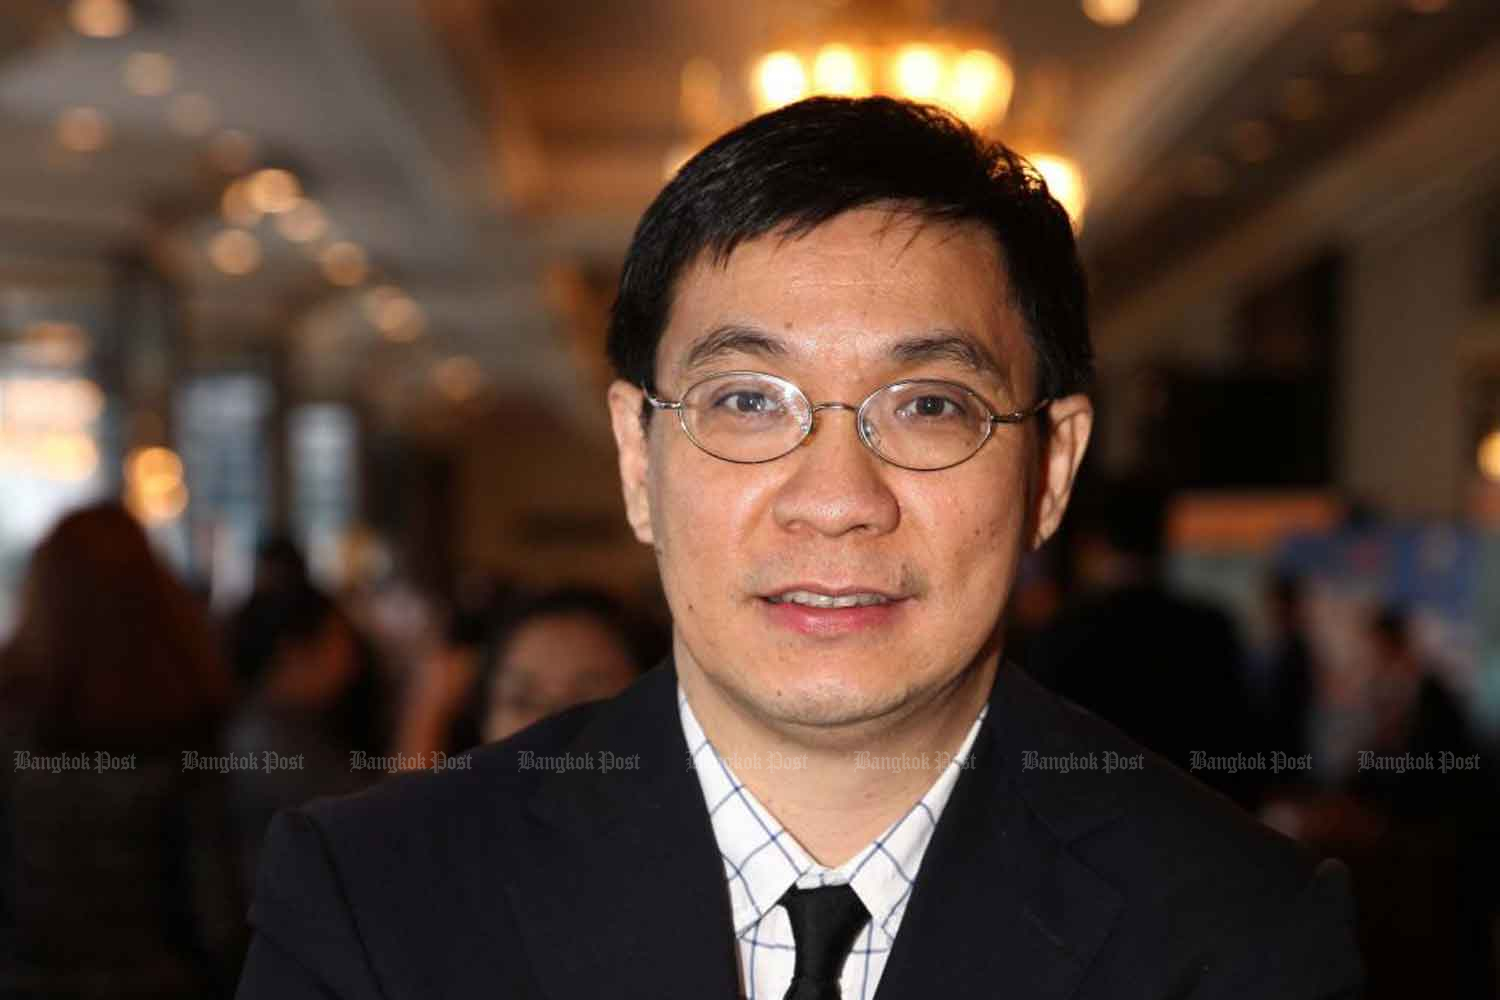 Somkiat Tangkitvanich, TDRI's president, says the economic crisis triggered by the coronavirus outbreak is expected to be bigger than the 2008 global financial crisis. Phrakrit Juntawong